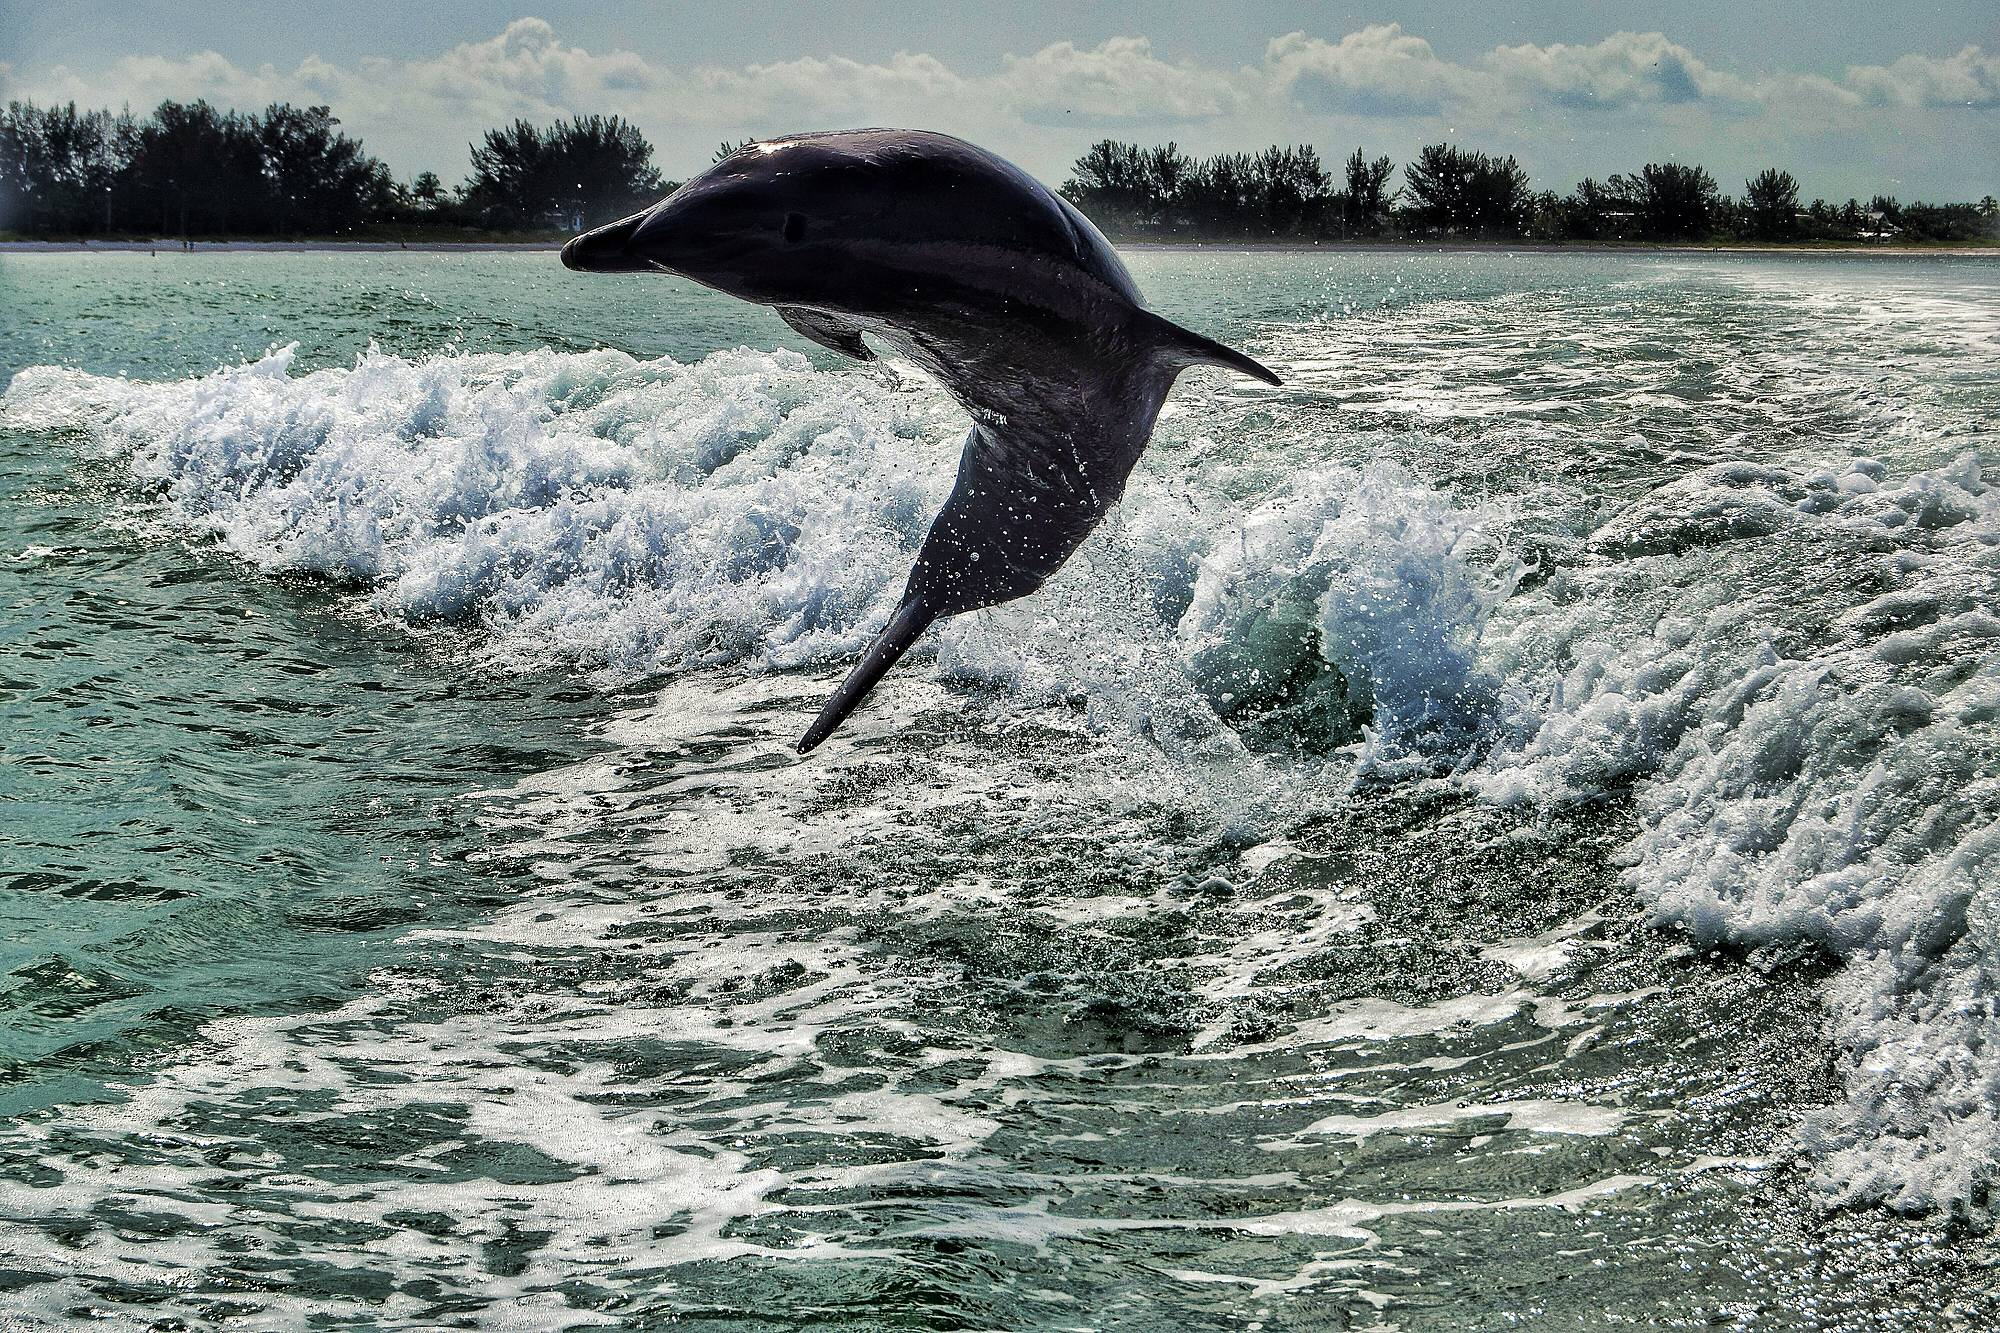 Dolphin in Sanibel, FL putting on a show for our boat tour!